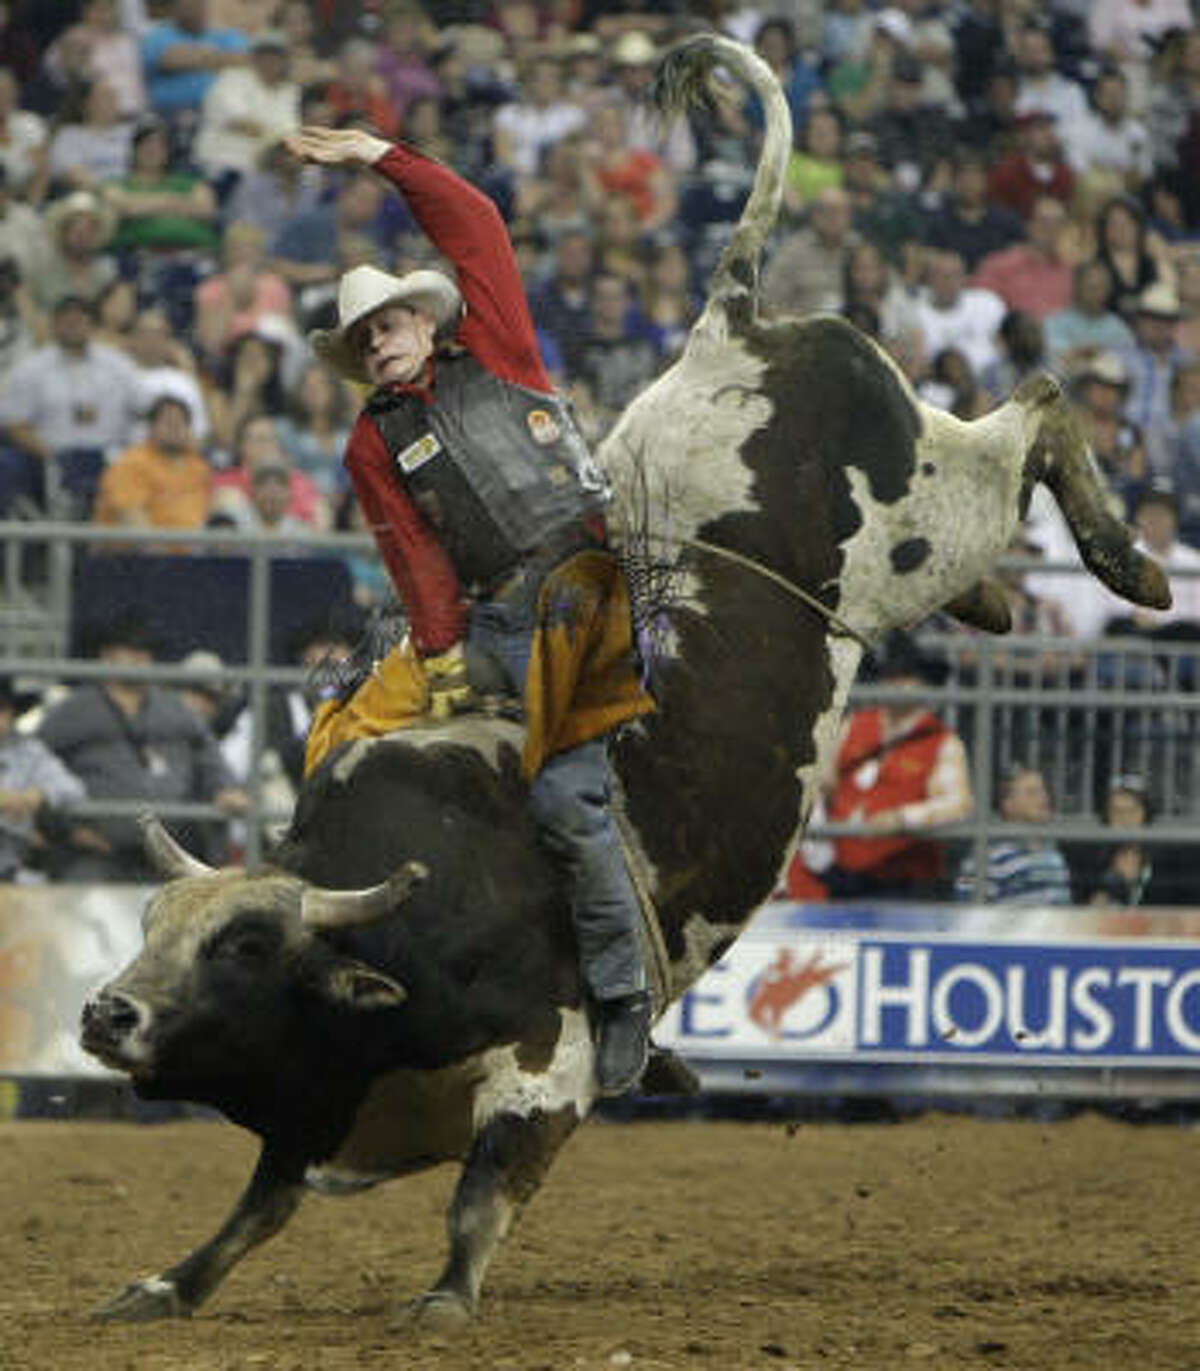 Cory Melton of Tolar rides a bull named Grinch during Xtreme Bulls at the Houston Livestock Show and Rodeo.